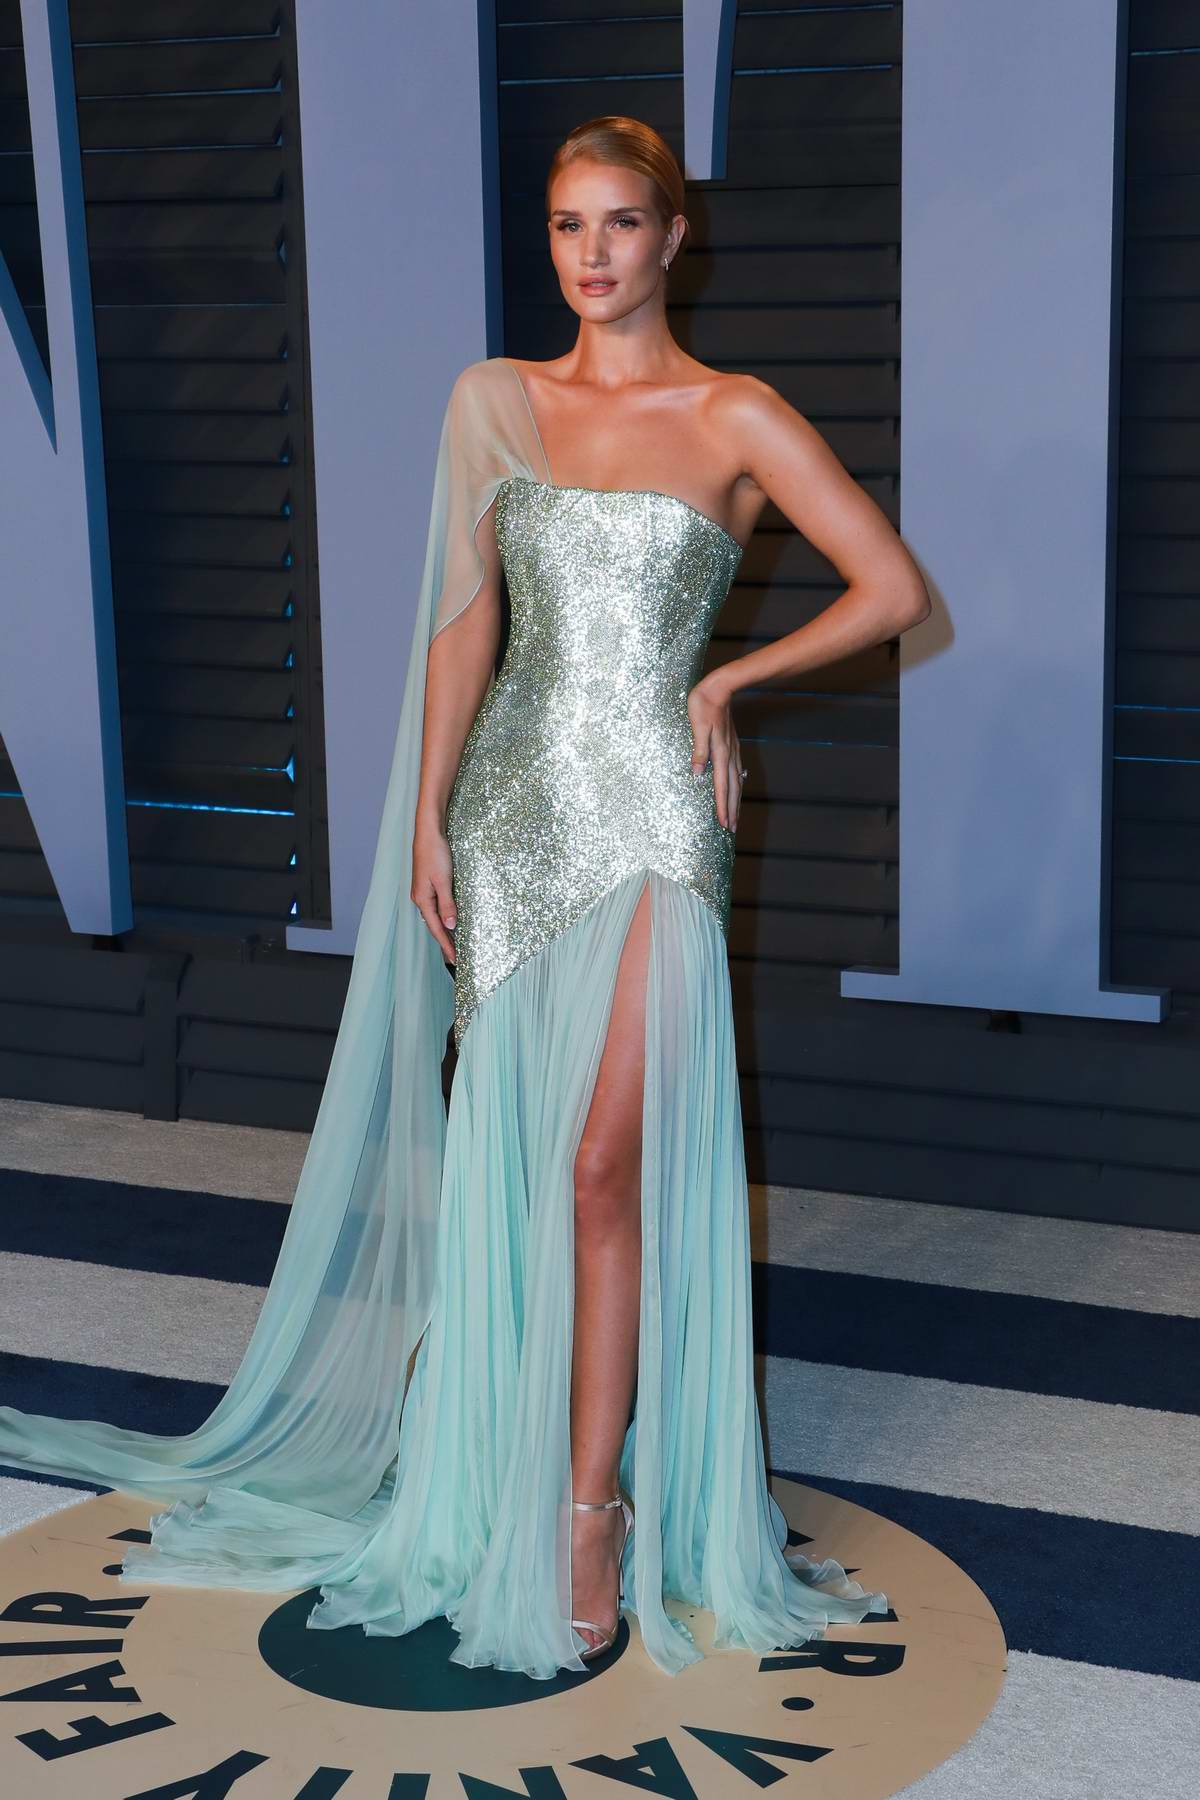 Rosie Huntington-Whiteley attends 2018 Vanity Fair Oscar Party at the Wallis Annenberg Center for the Performing Arts in Beverly Hills, Los Angeles